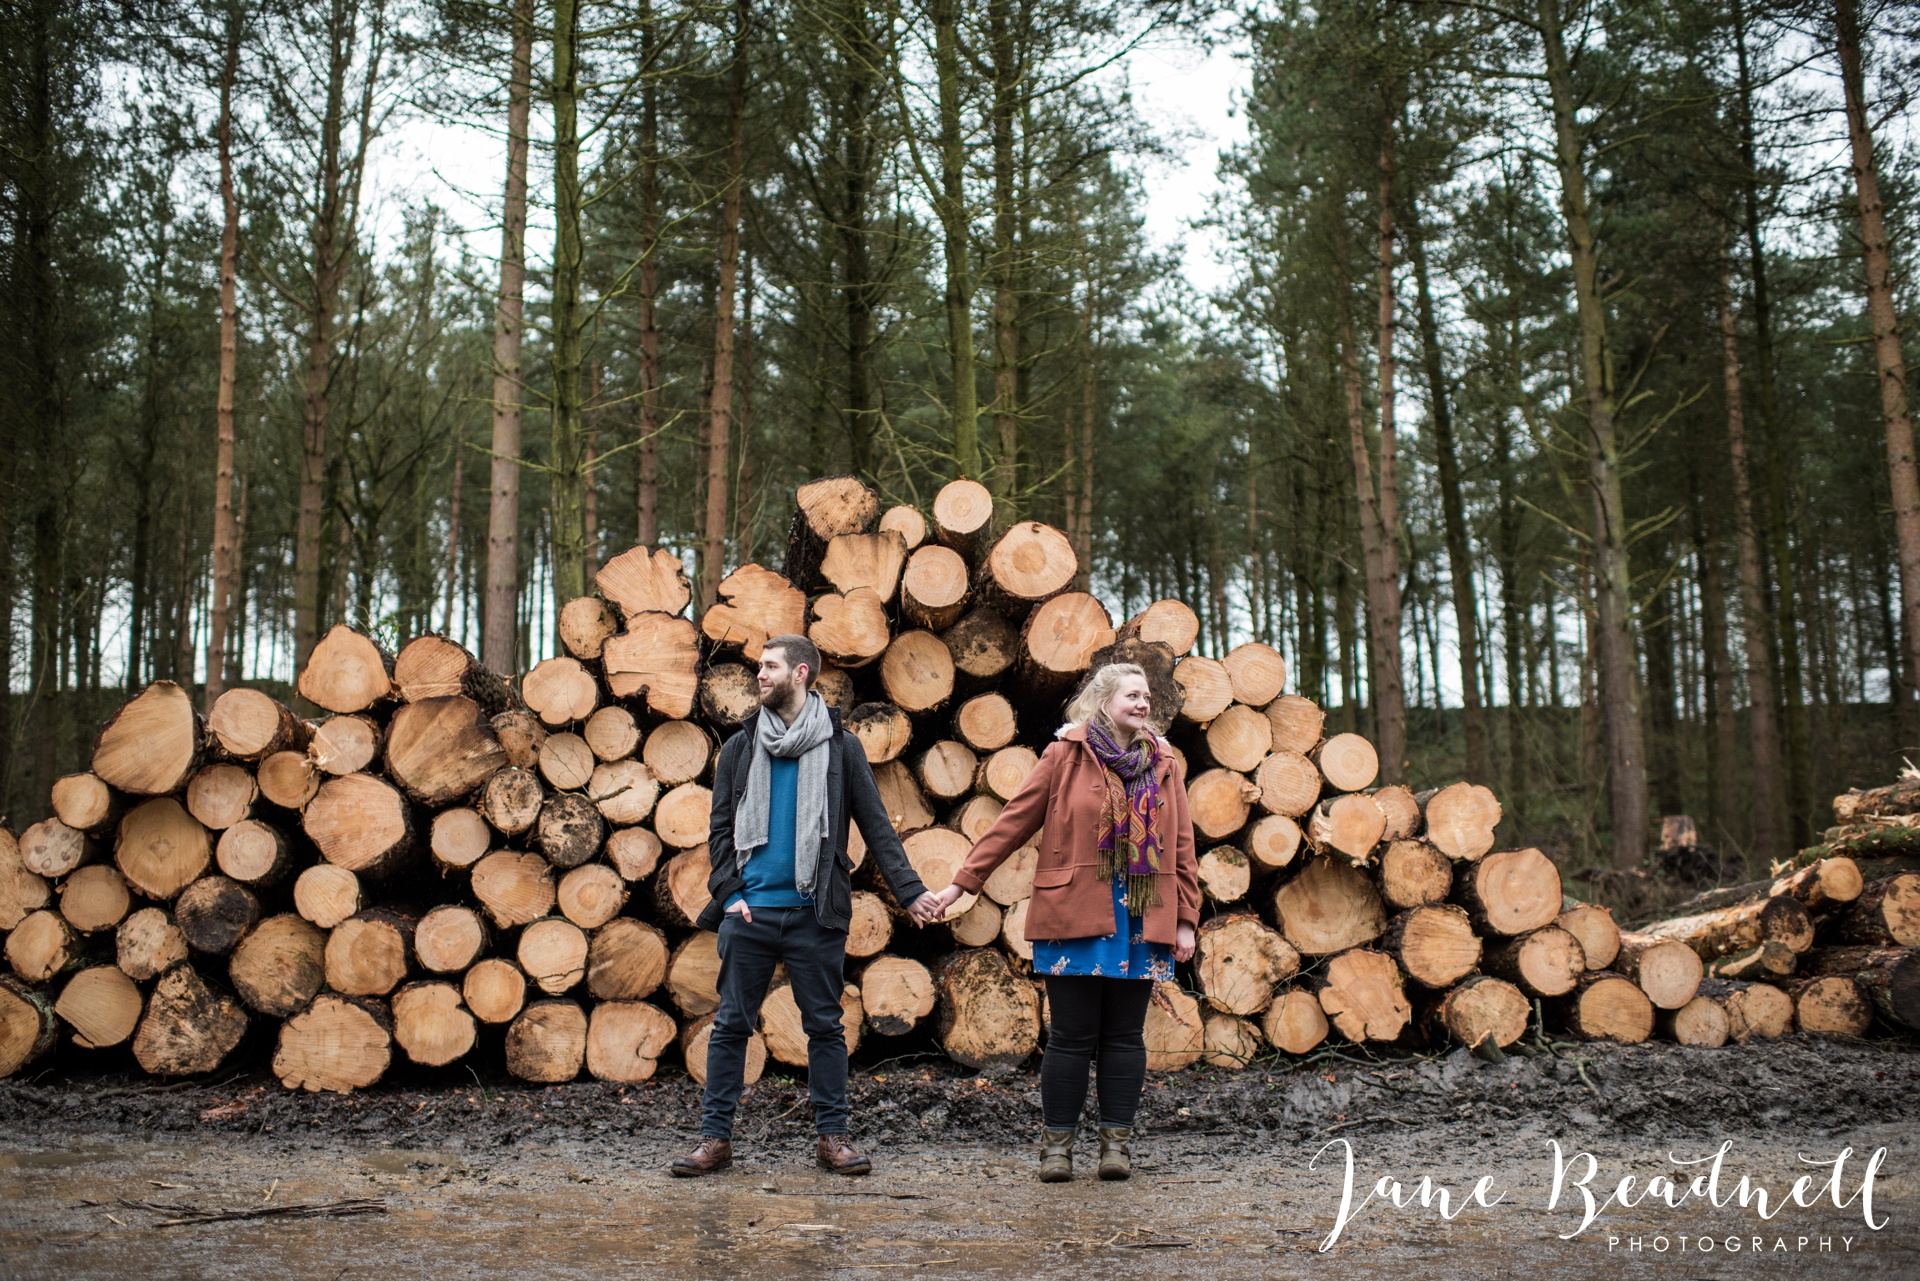 engagement photography Chevin jane beadnell wedding photographer Otley_0019